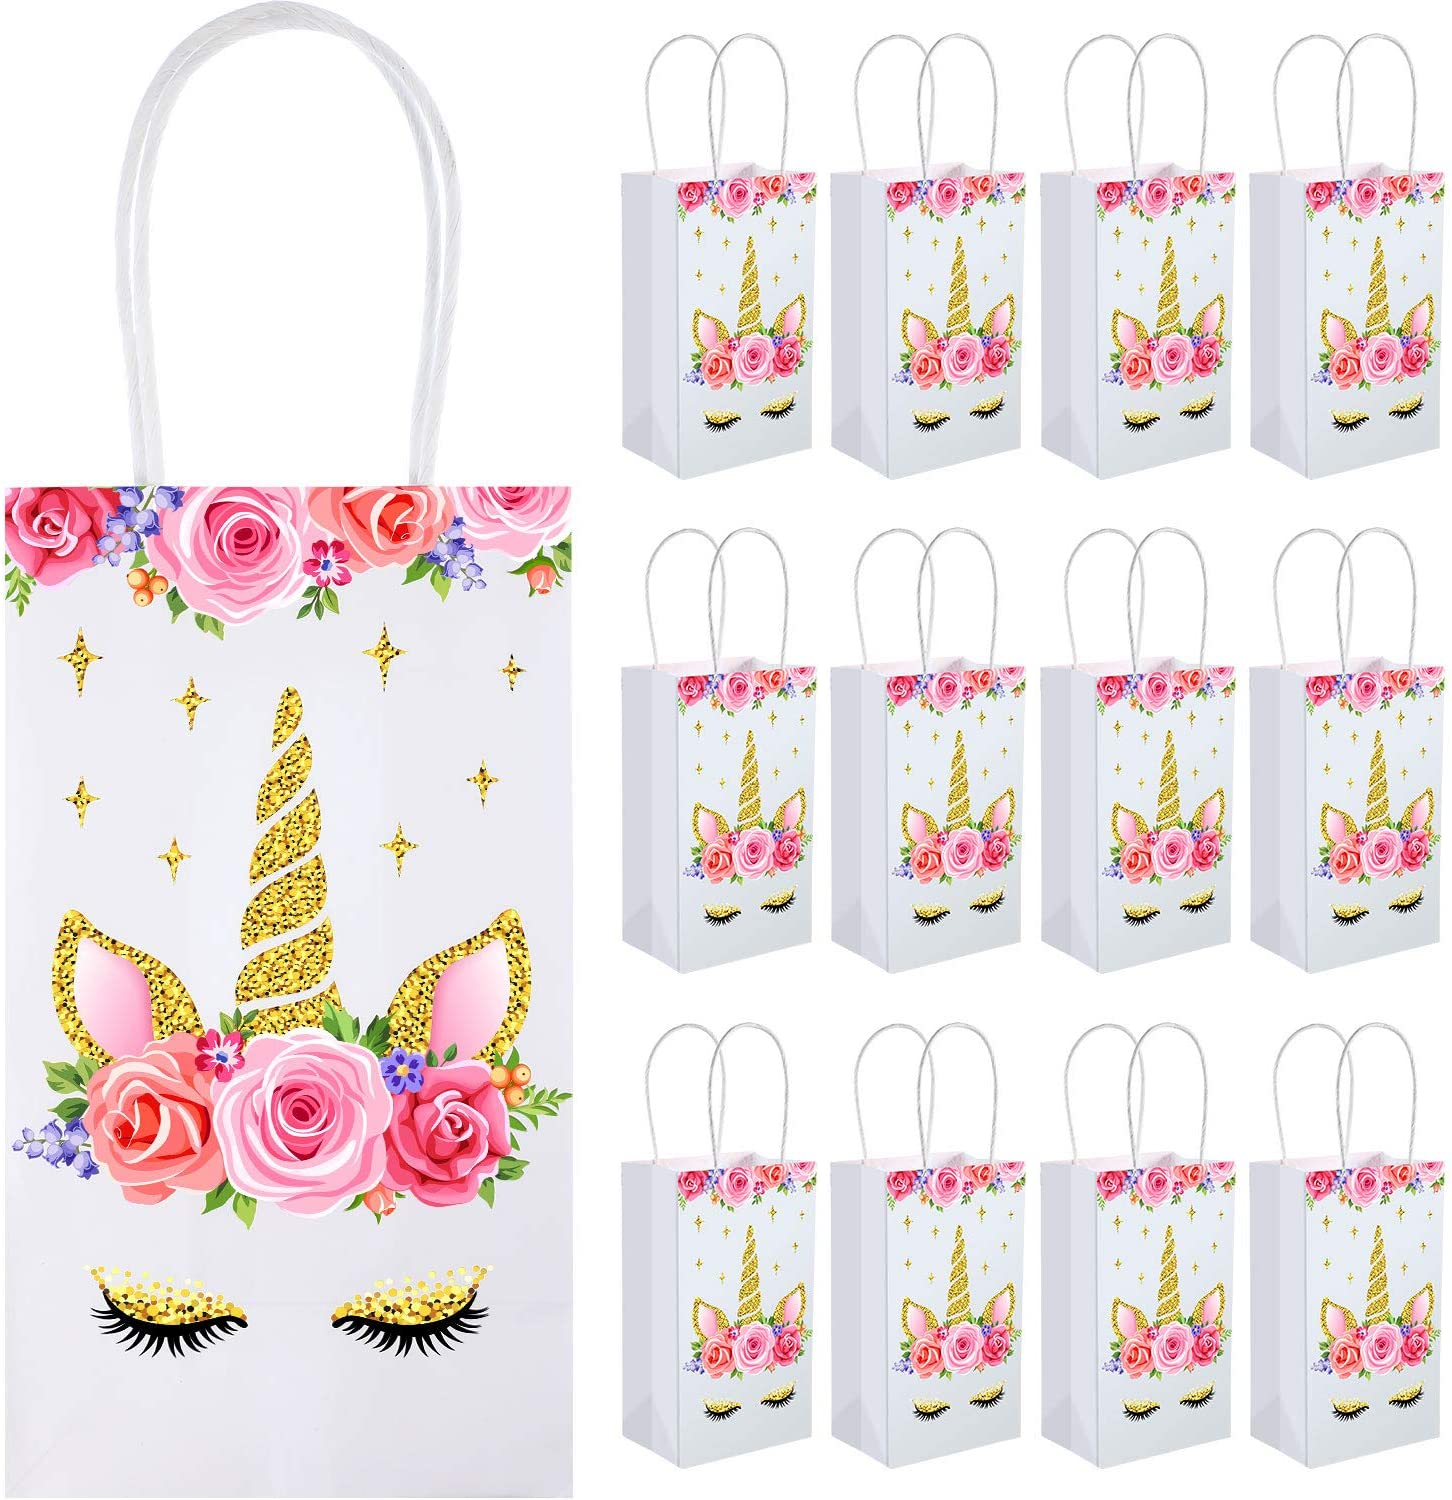 Unicorn Party Favor Bags for 12 to 15 Guests